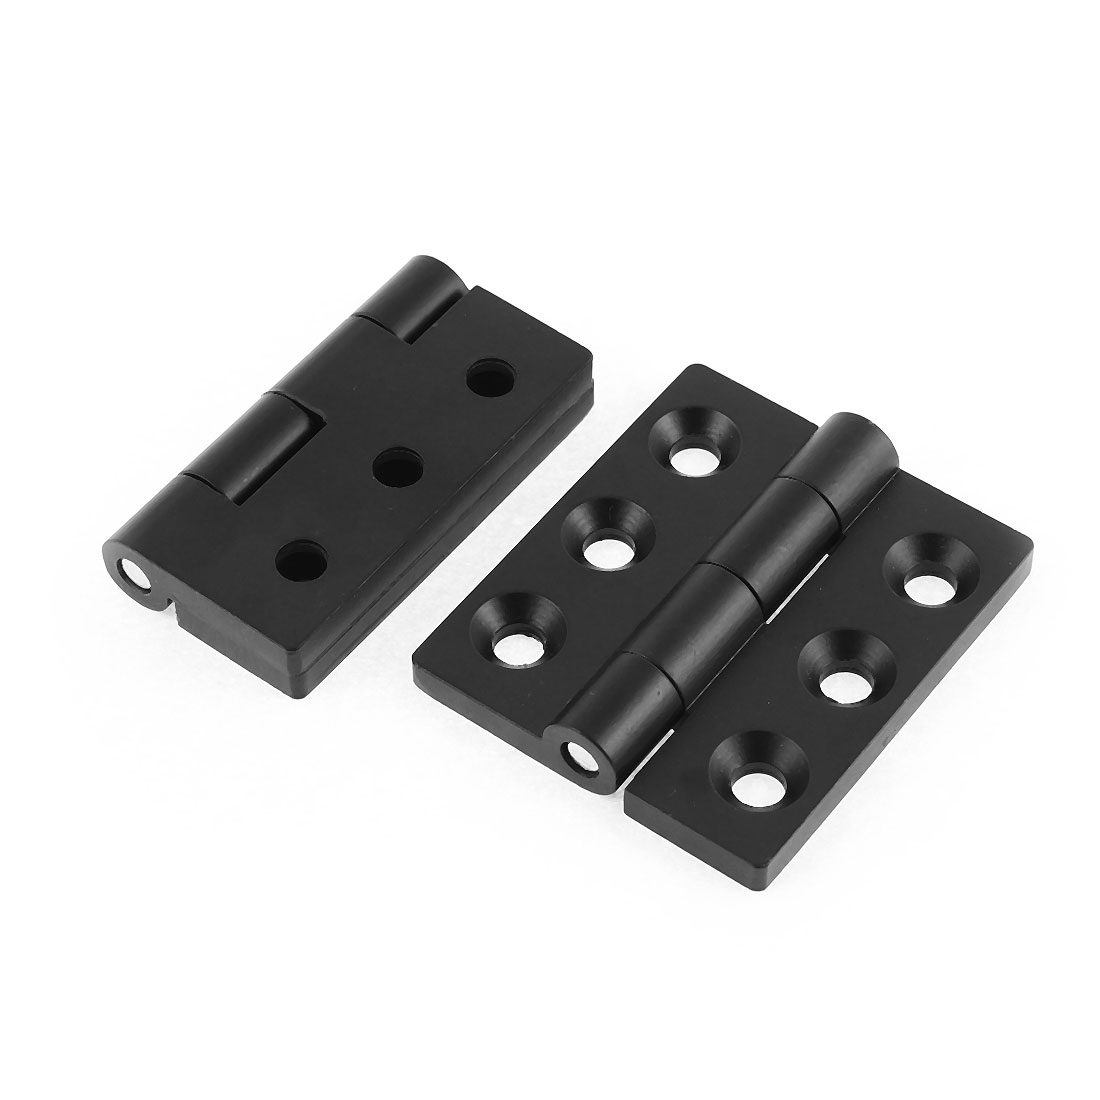 Cupboard Cabinet Closet 65mm x 55mm Square Corner Door Butt Hinge Black 2Pcs